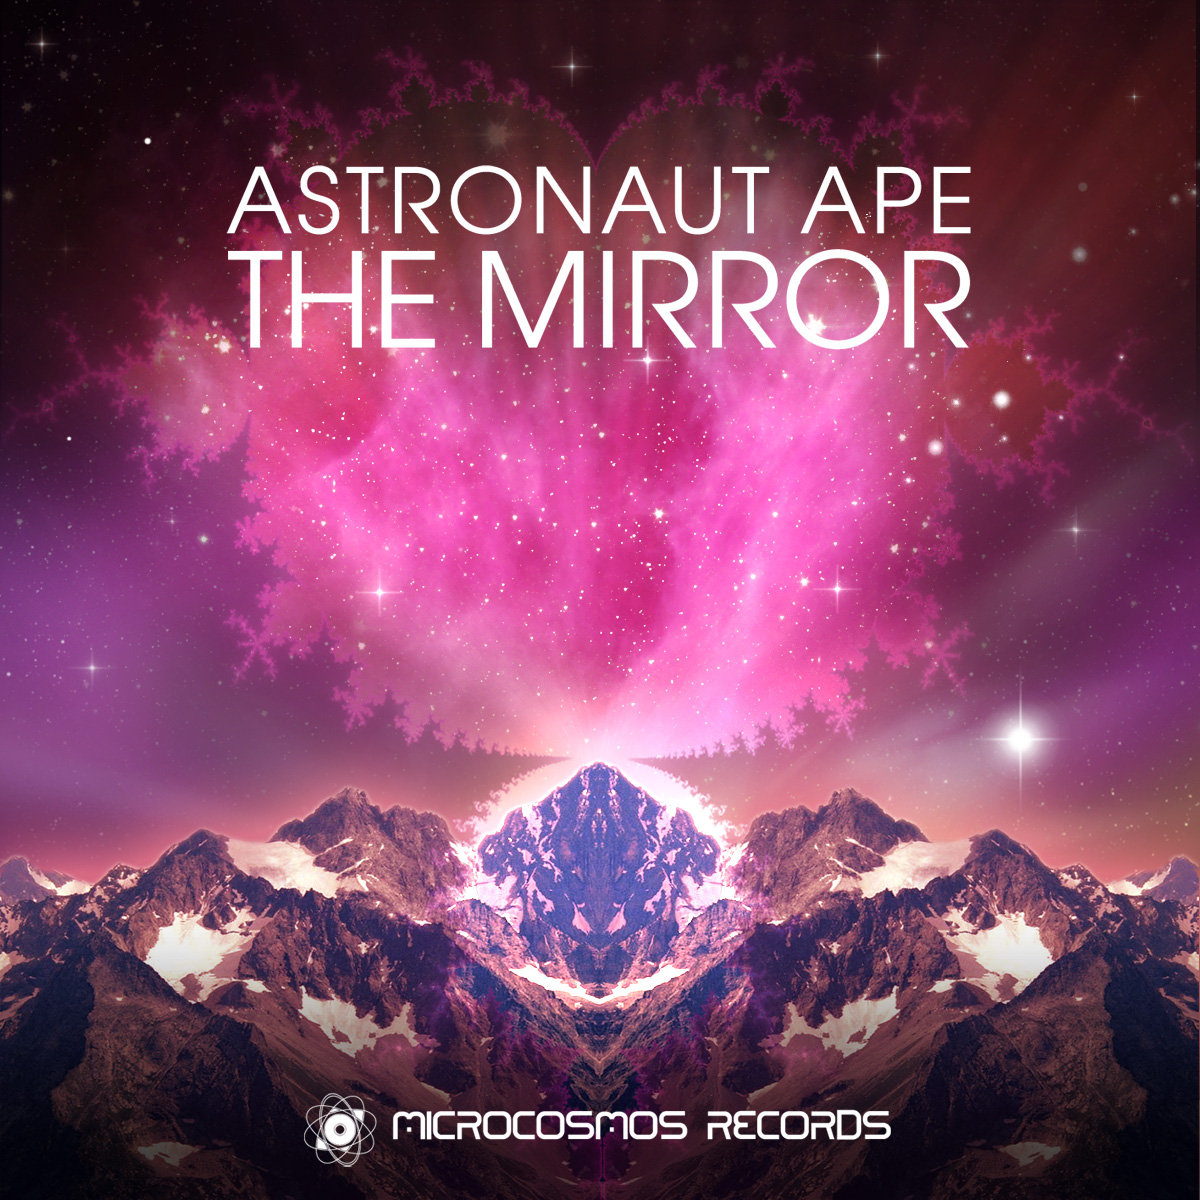 Astronaut Ape - The Mirror